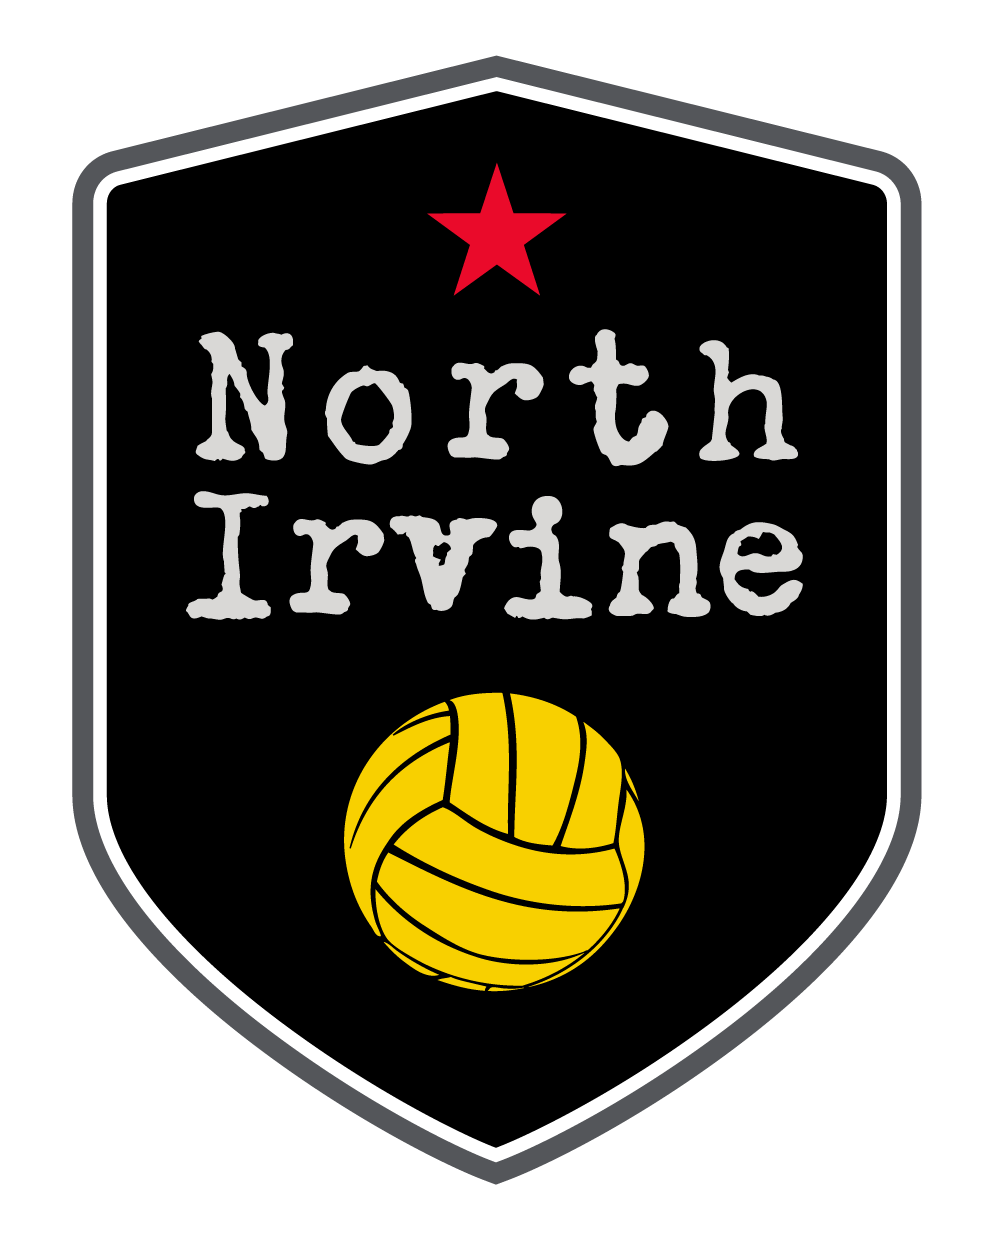 north-irvine-wpc-logo-20-01.png